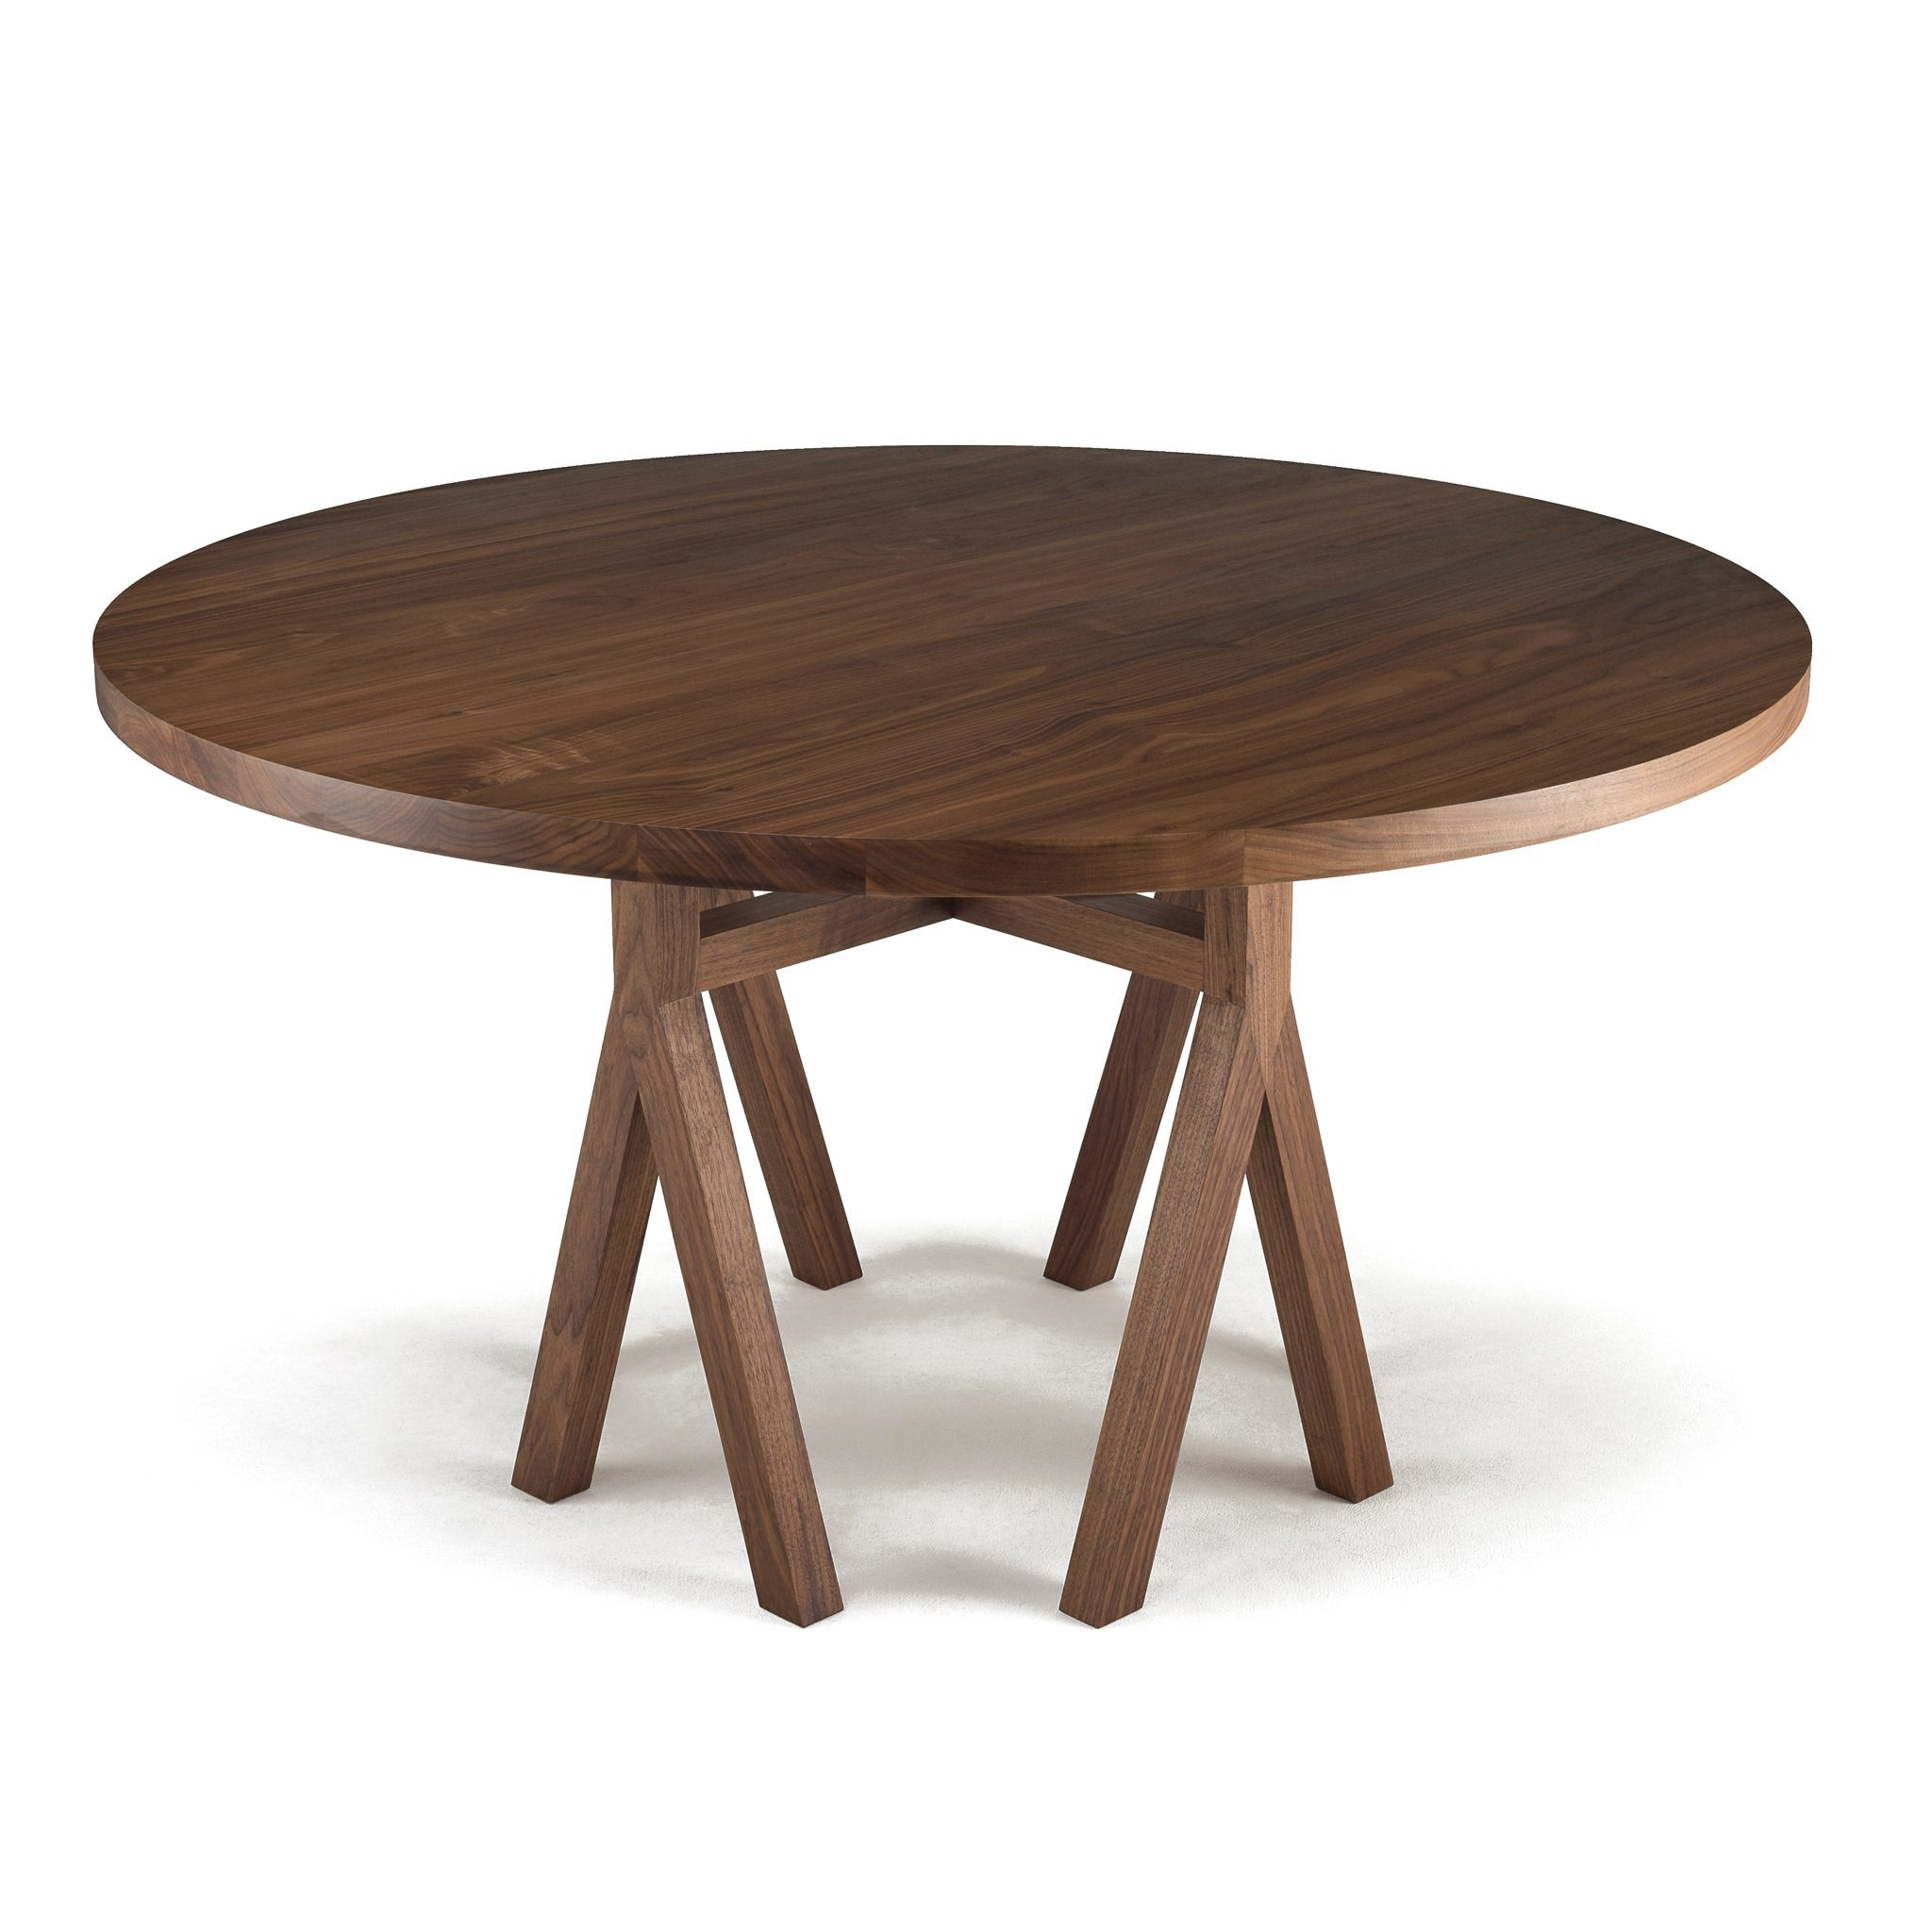 Commune Dining Table by Neri & Hu